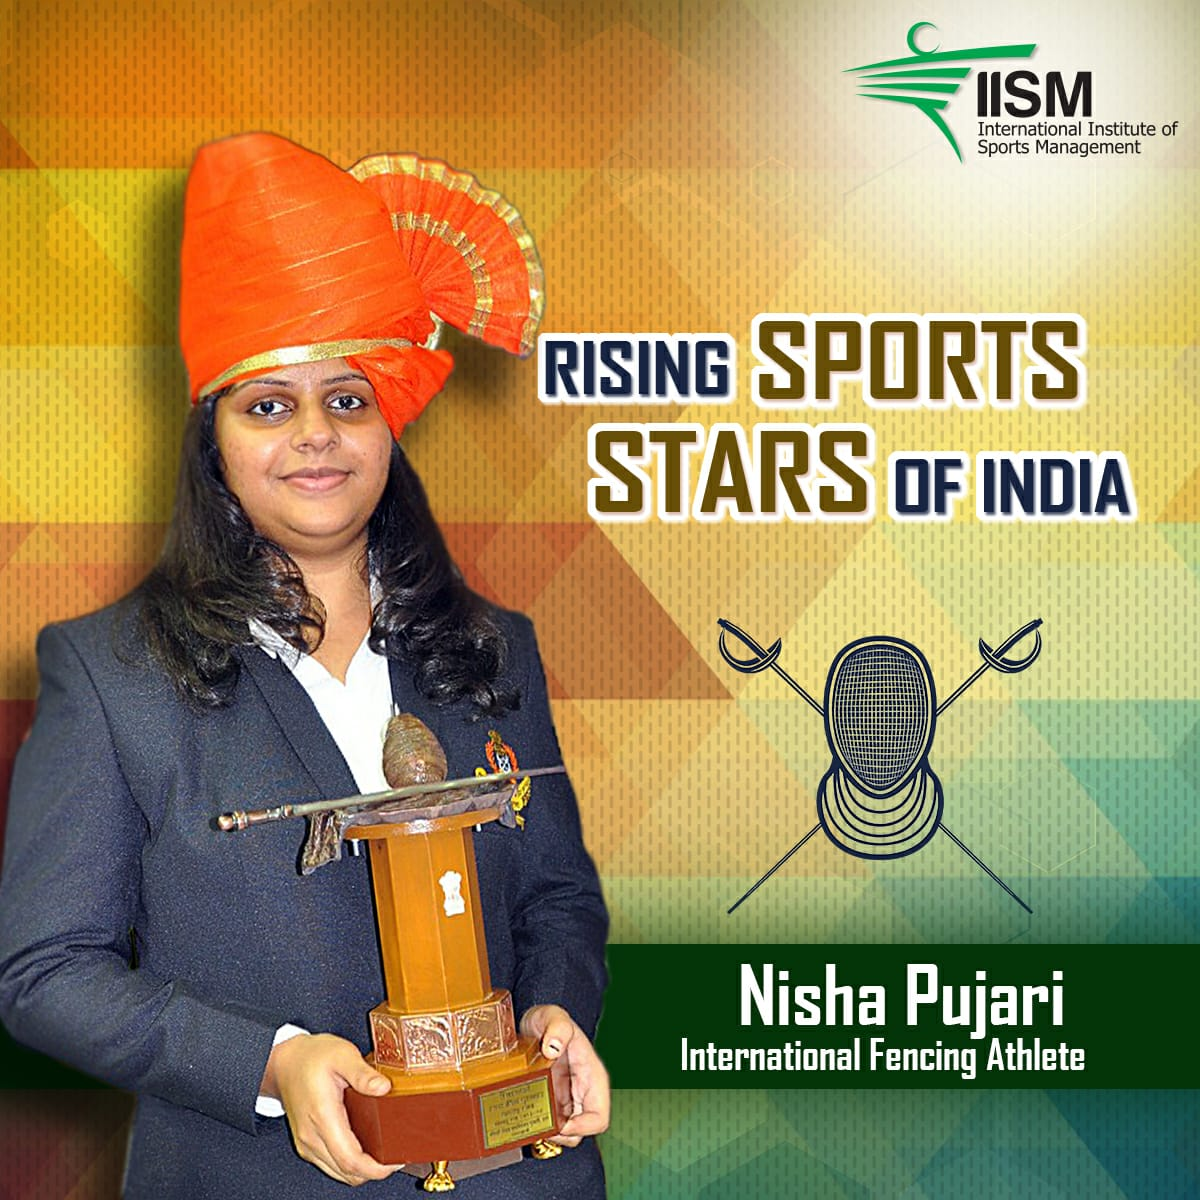 I was a very active sports player since school. This royal sport- Fencing was introduced to me in class 7. With enthusiasm, I decided to take up this sport professionally with guidance of my coach Dr. Bhushan Jadhav. pic.twitter.com/NGZ33xnEqN